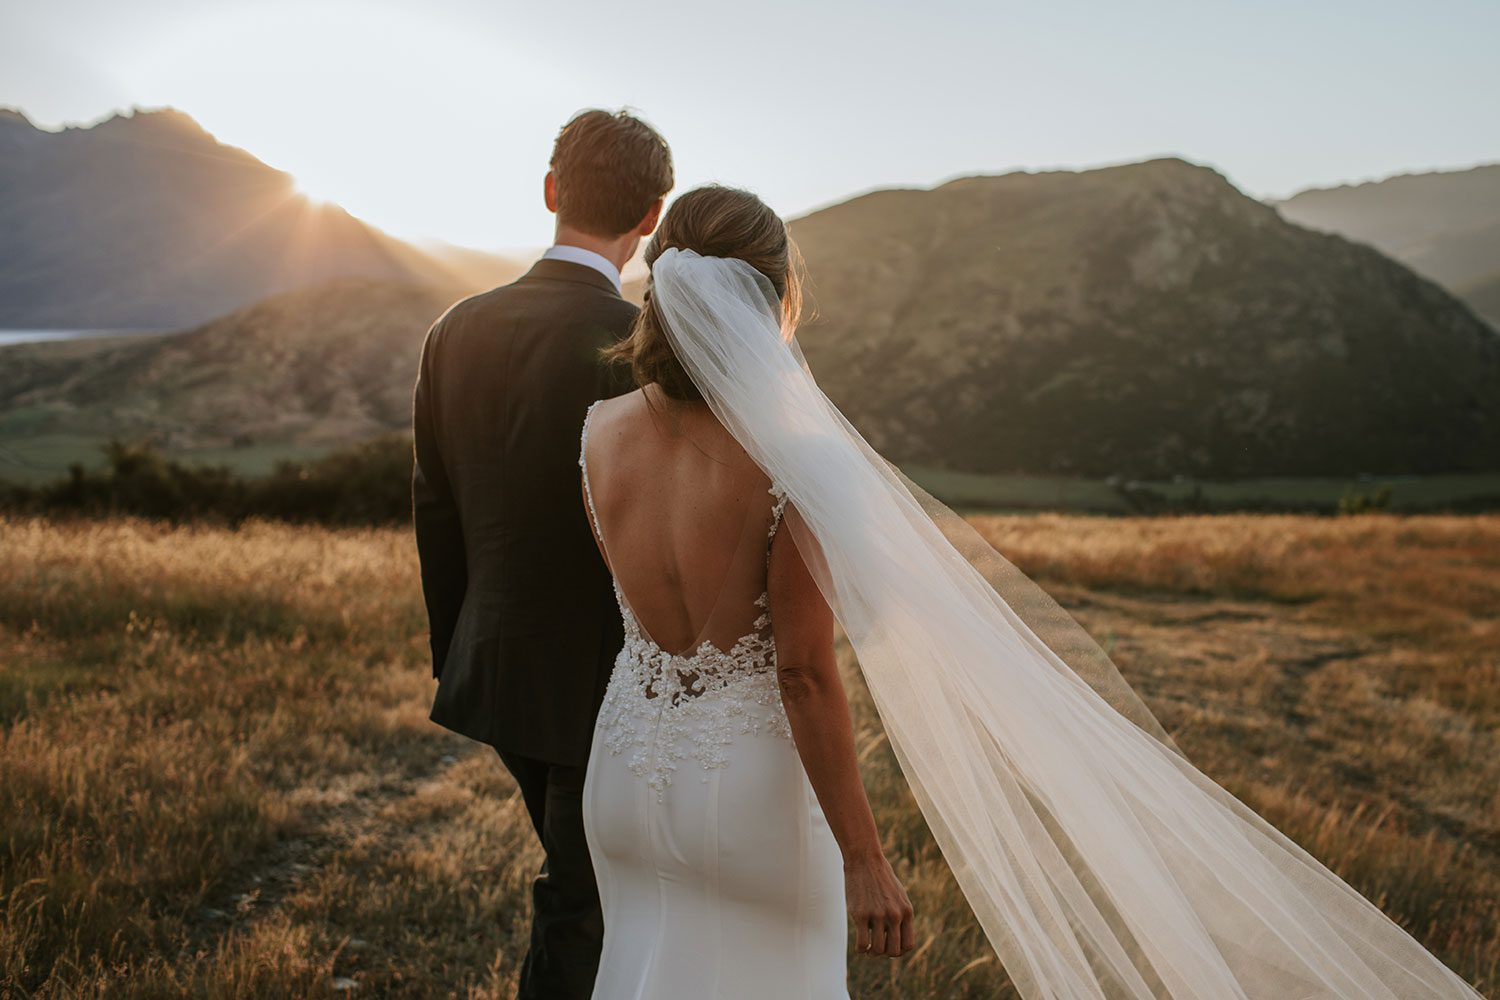 Bride wearing bespoke bridal gown with richly beaded lace over sheer tulle bodice and low back from Auckland wedding dress designer Vinka designs - in field close up of back veil in wind